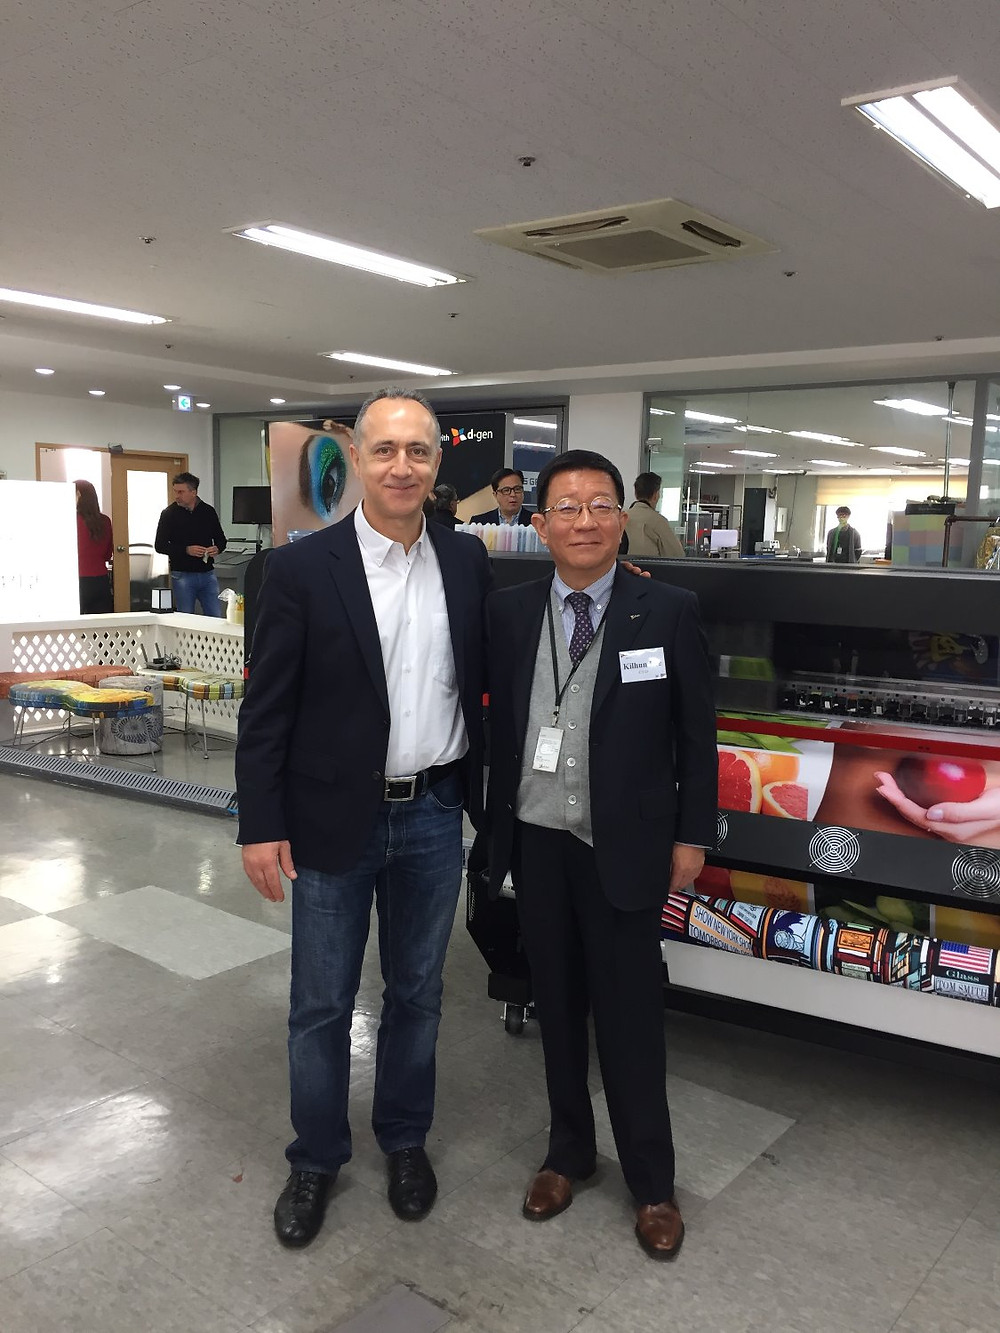 Mr.Kilhun Lee, Chairman and CEO of D-Gen, Inc. & Mr.S.Kulakov